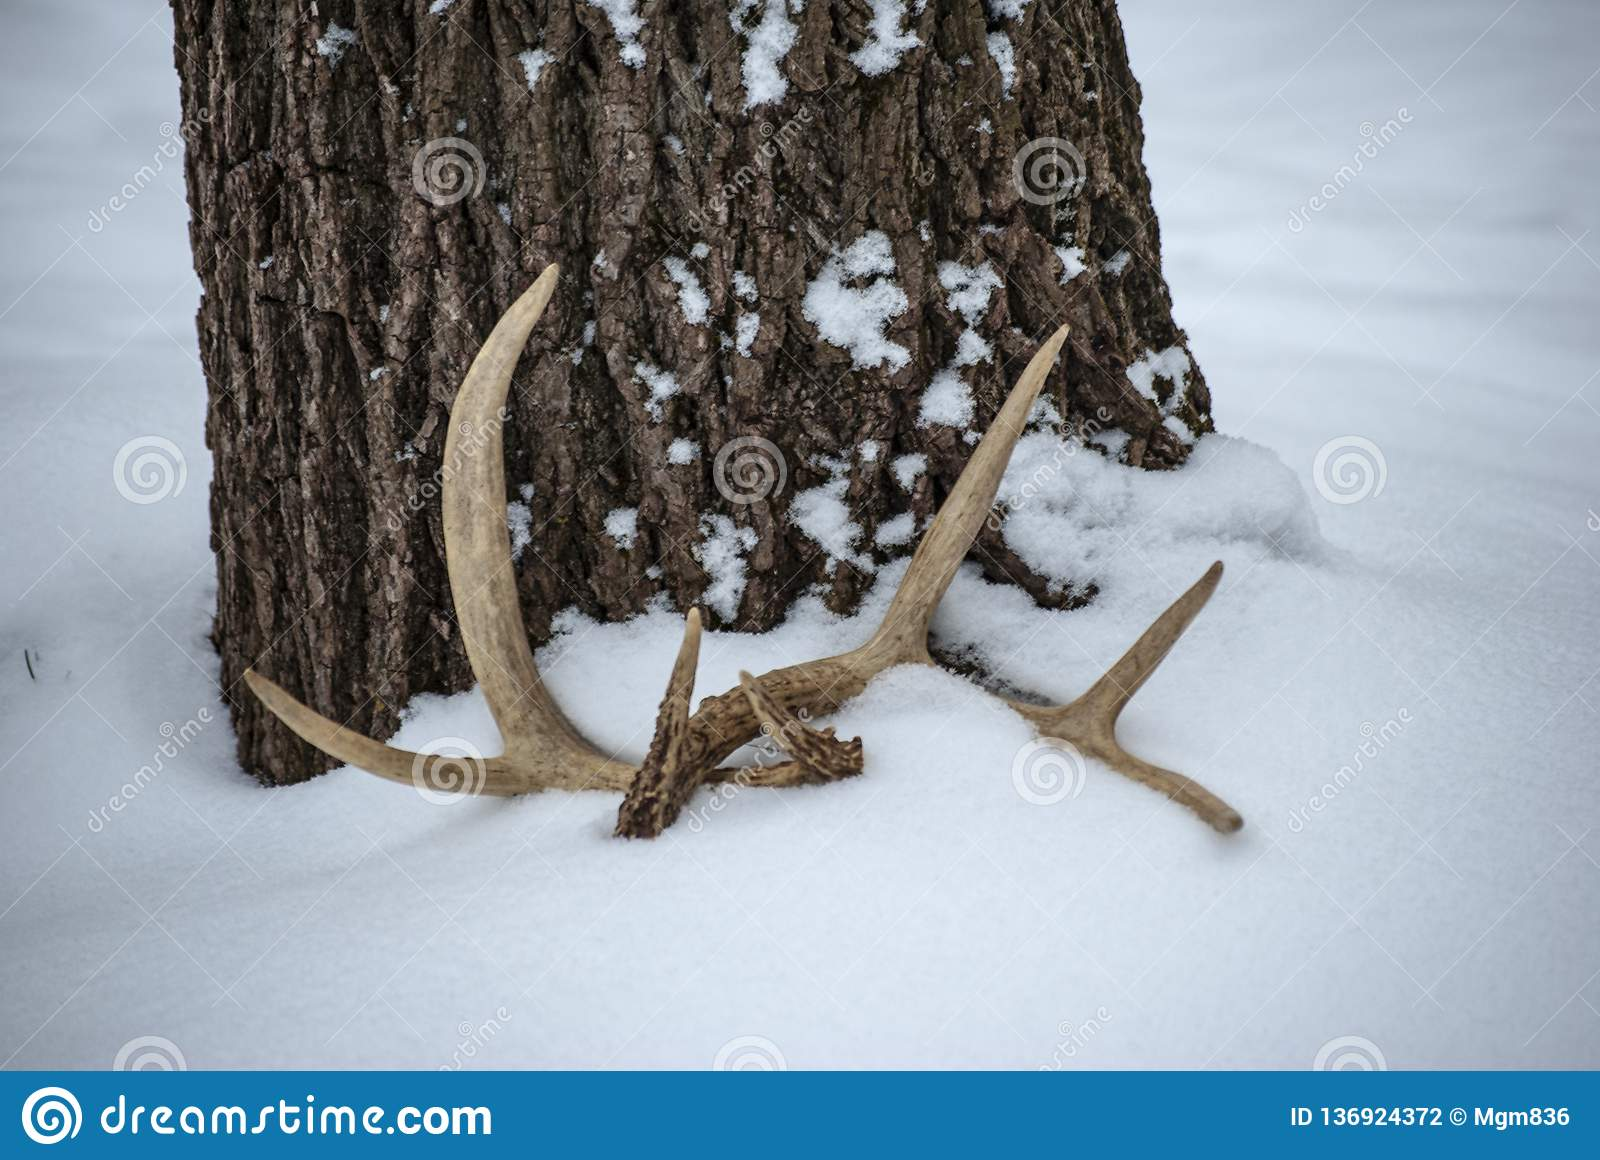 Deer antlers beneath a tree in the snow